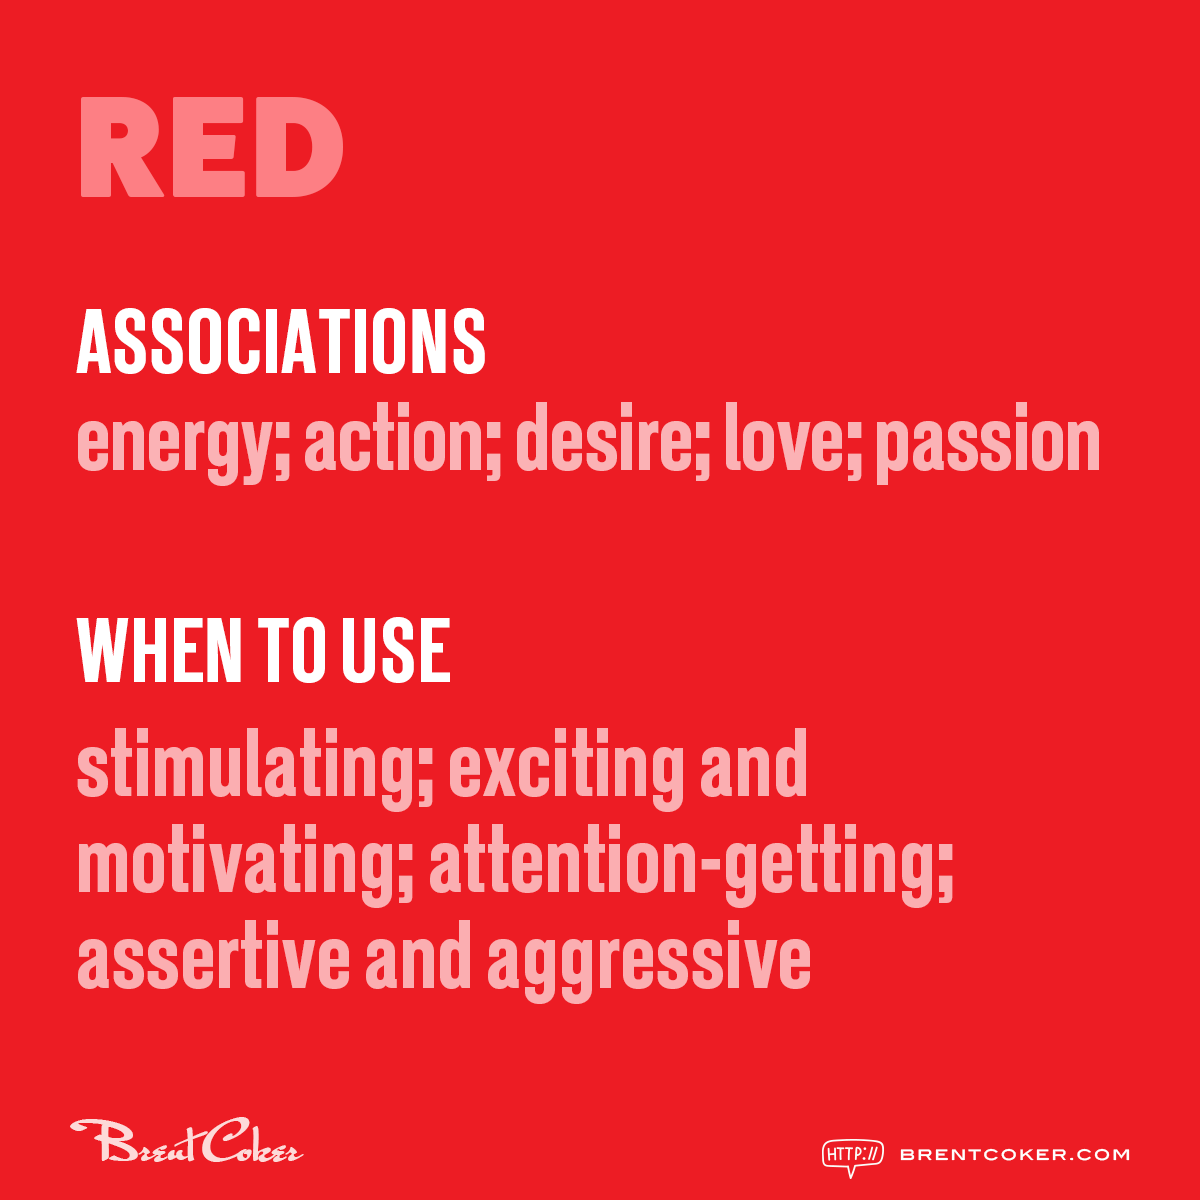 The psychology of colour in marketing Red